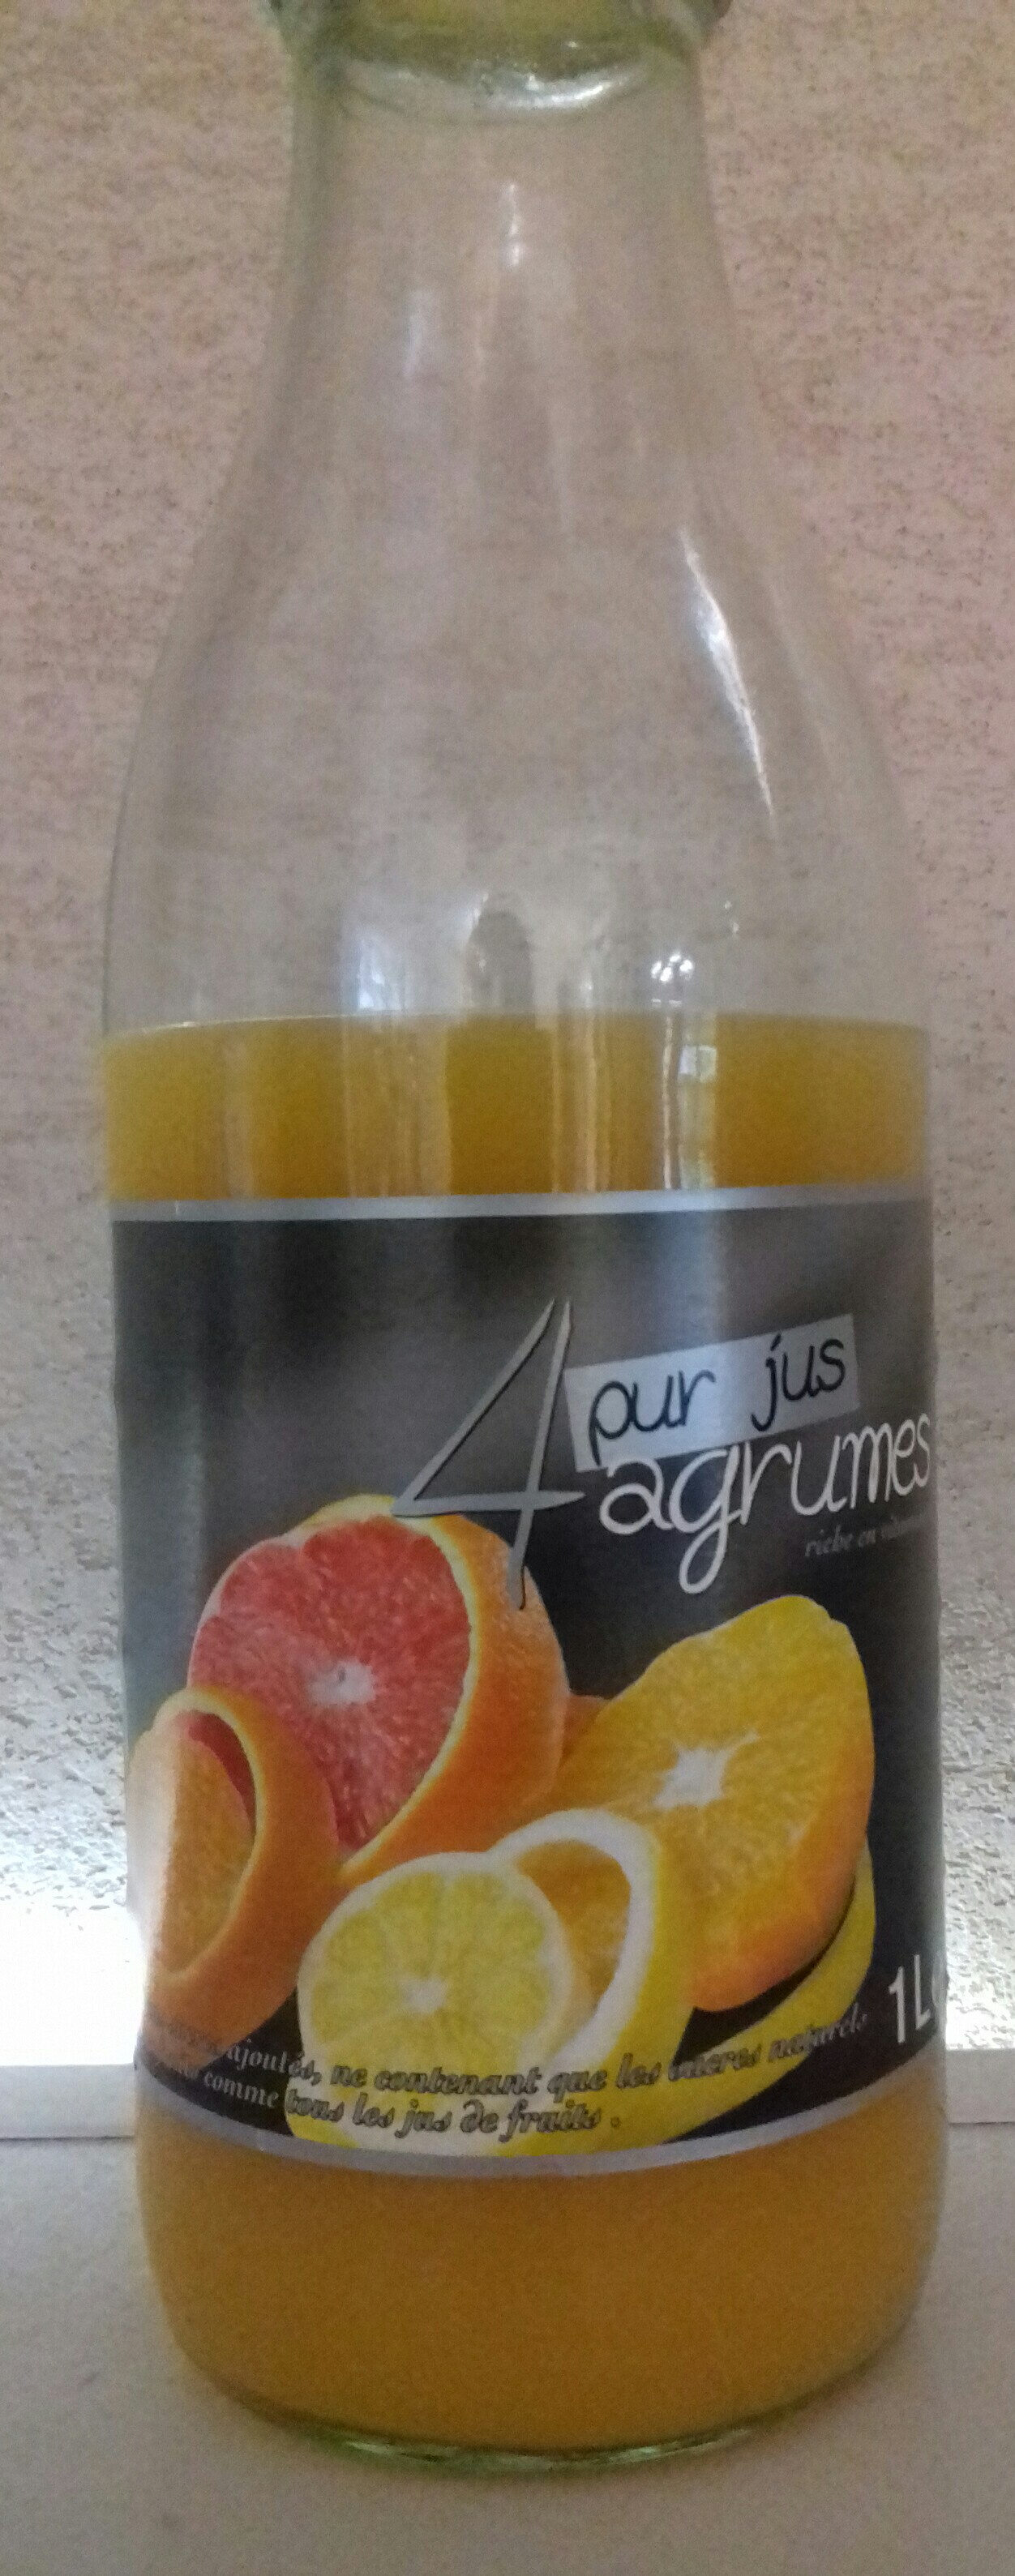 4 agrumes pur jus - Product - fr